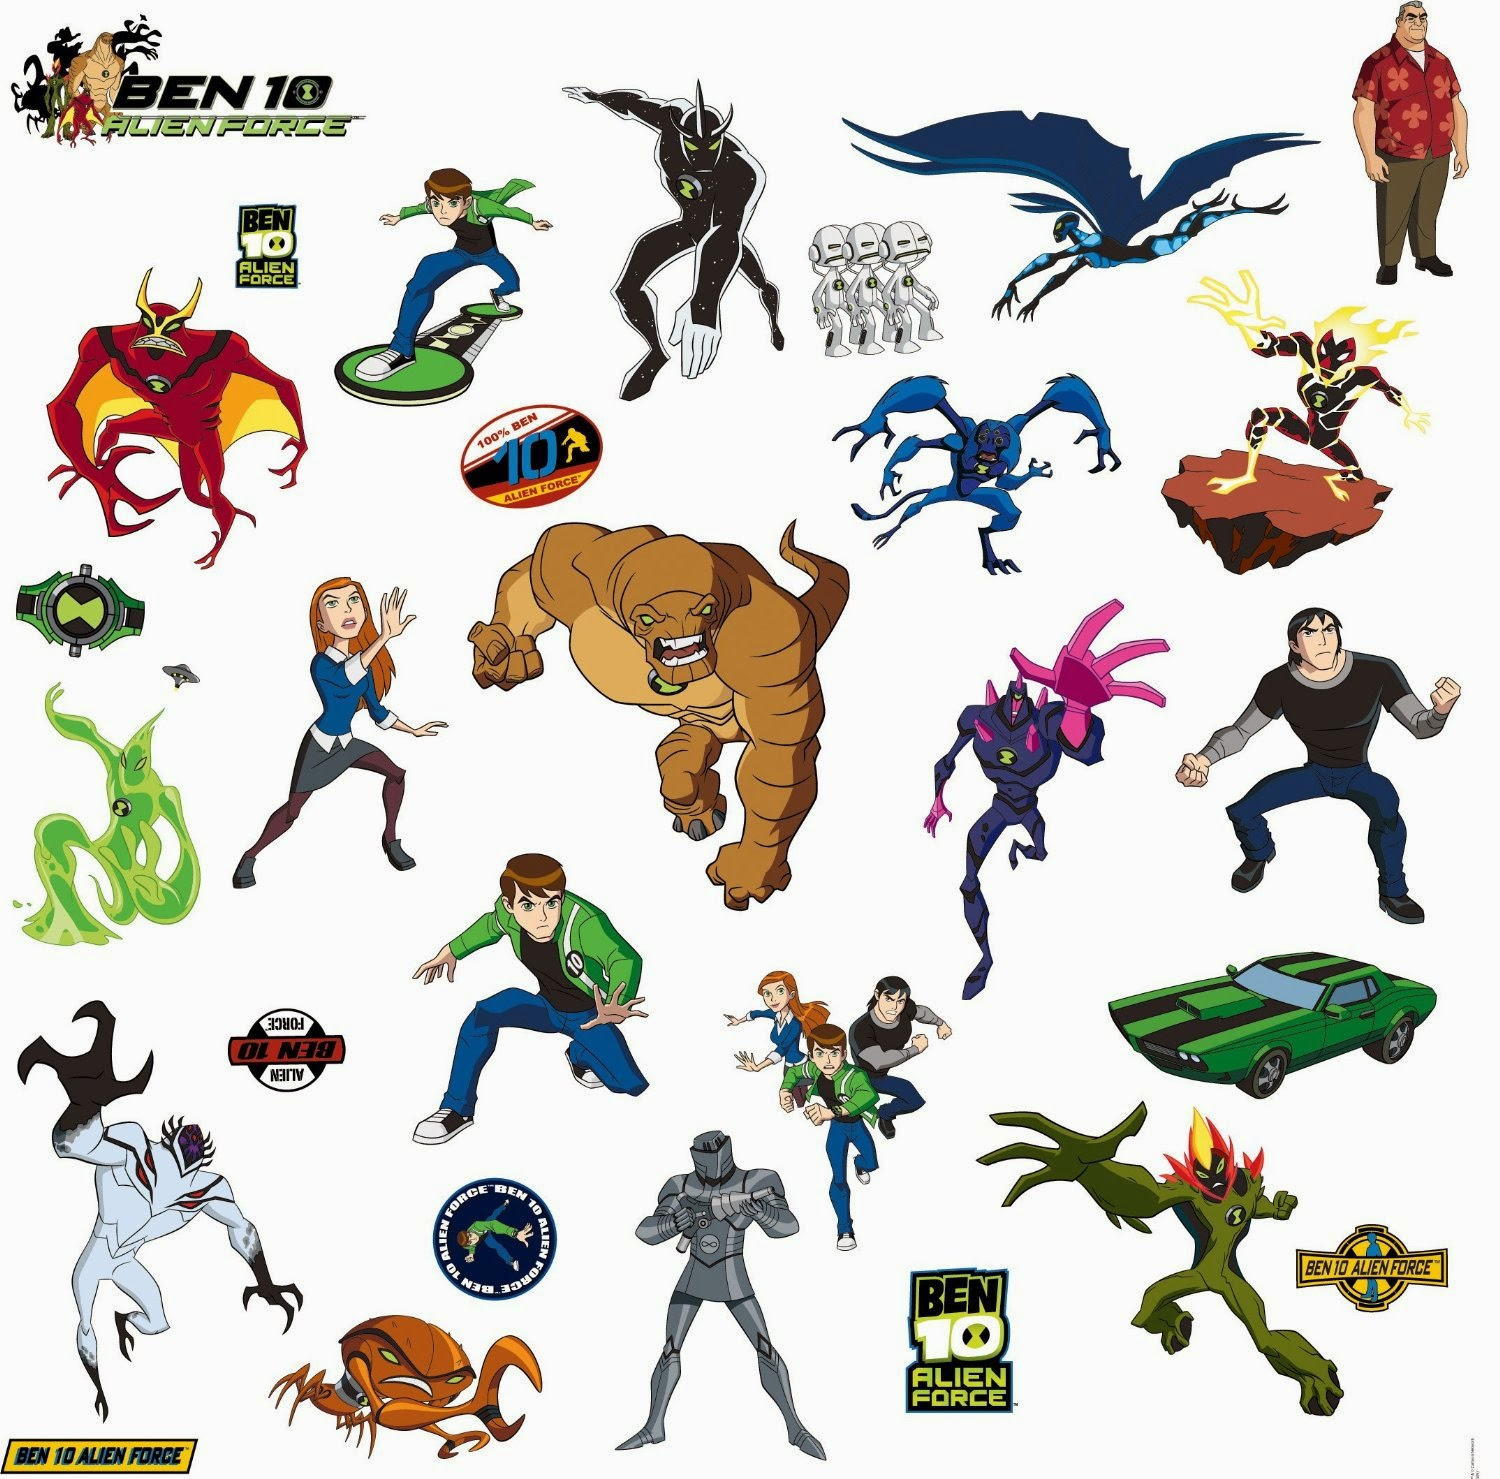 Removable Wall Art Stickers Mini Bedrooms For Kids And Adults The Newest Ben 10